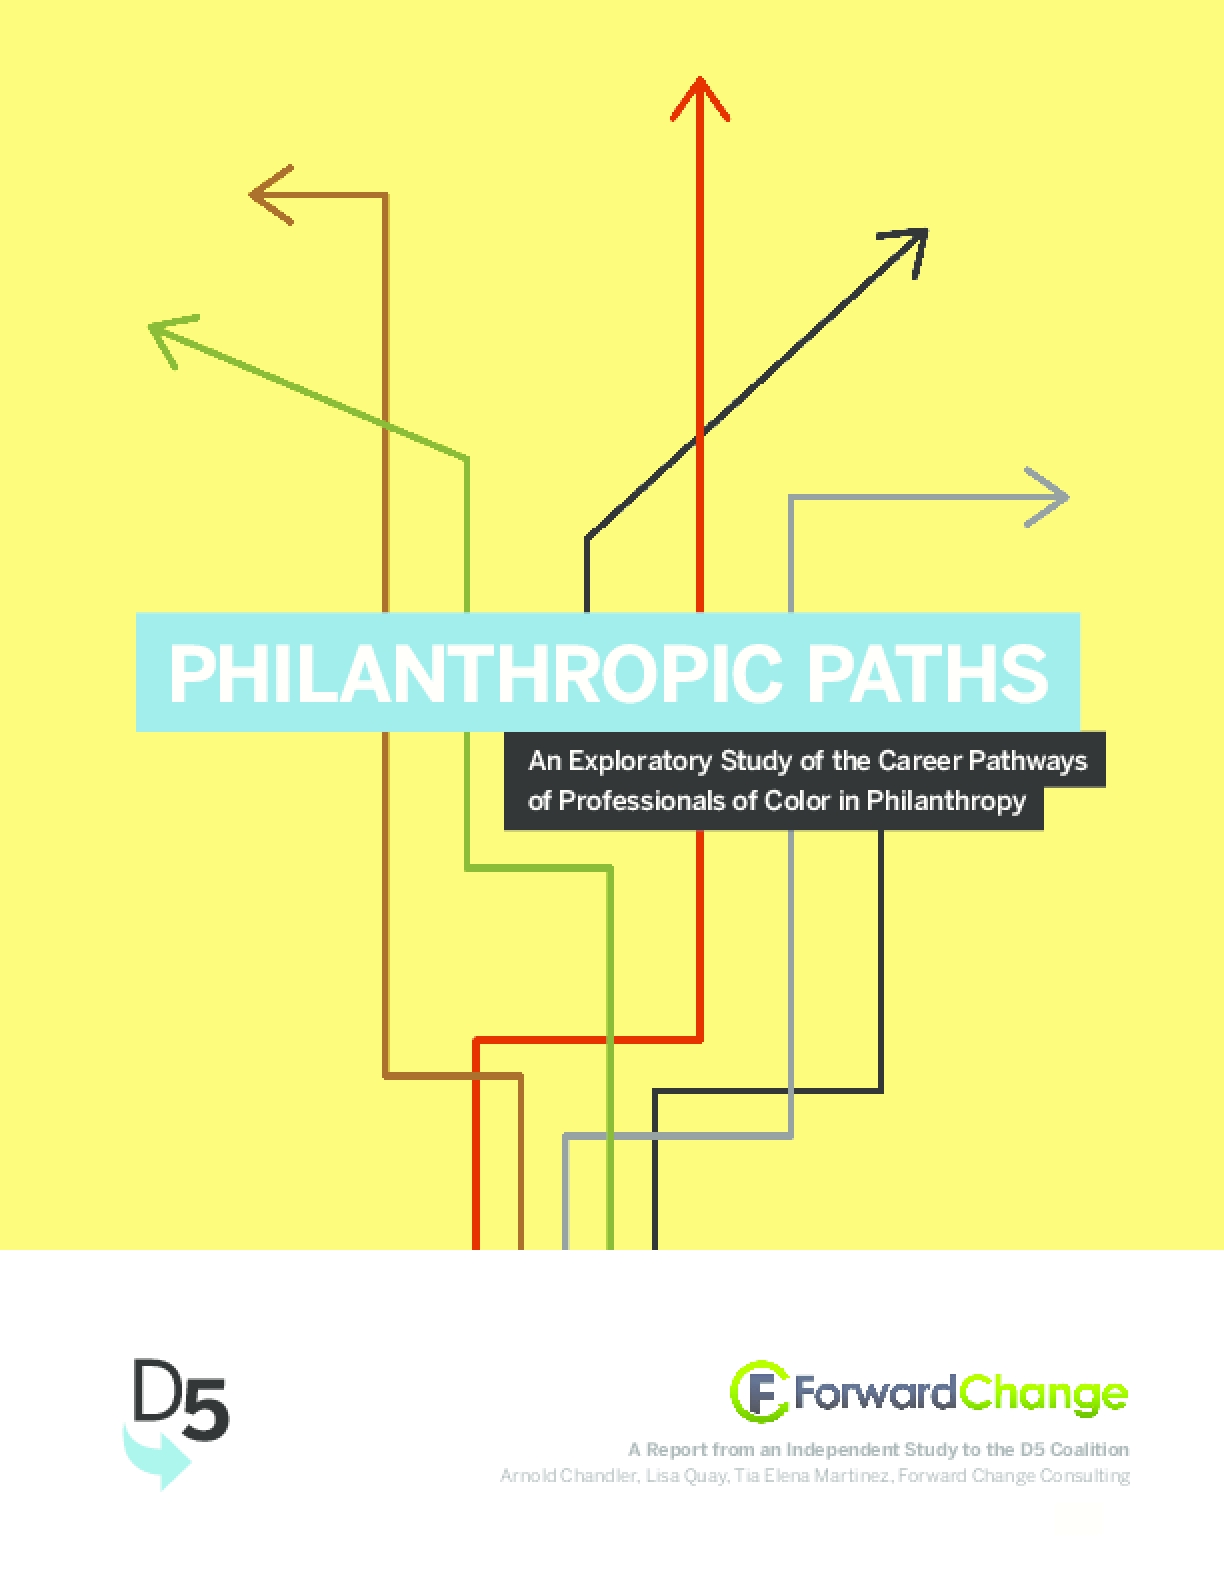 Philanthropic Paths: An Exploratory Study of the Career Pathways of Professionals of Color in Philanthropy